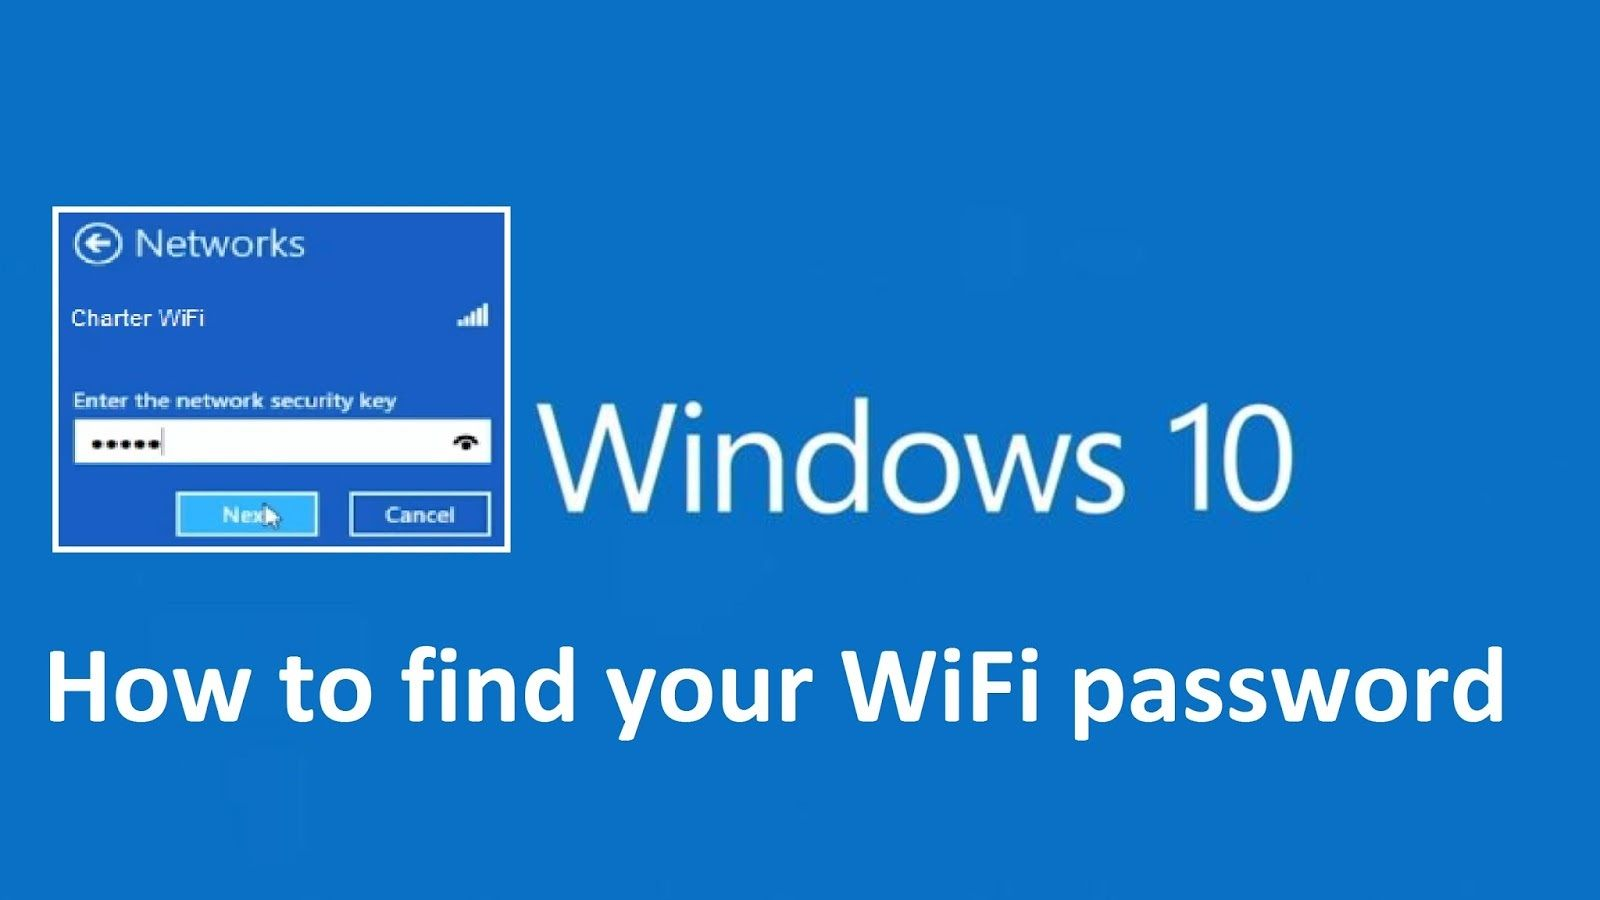 How To Find Your WiFi Network Password On Windows 10